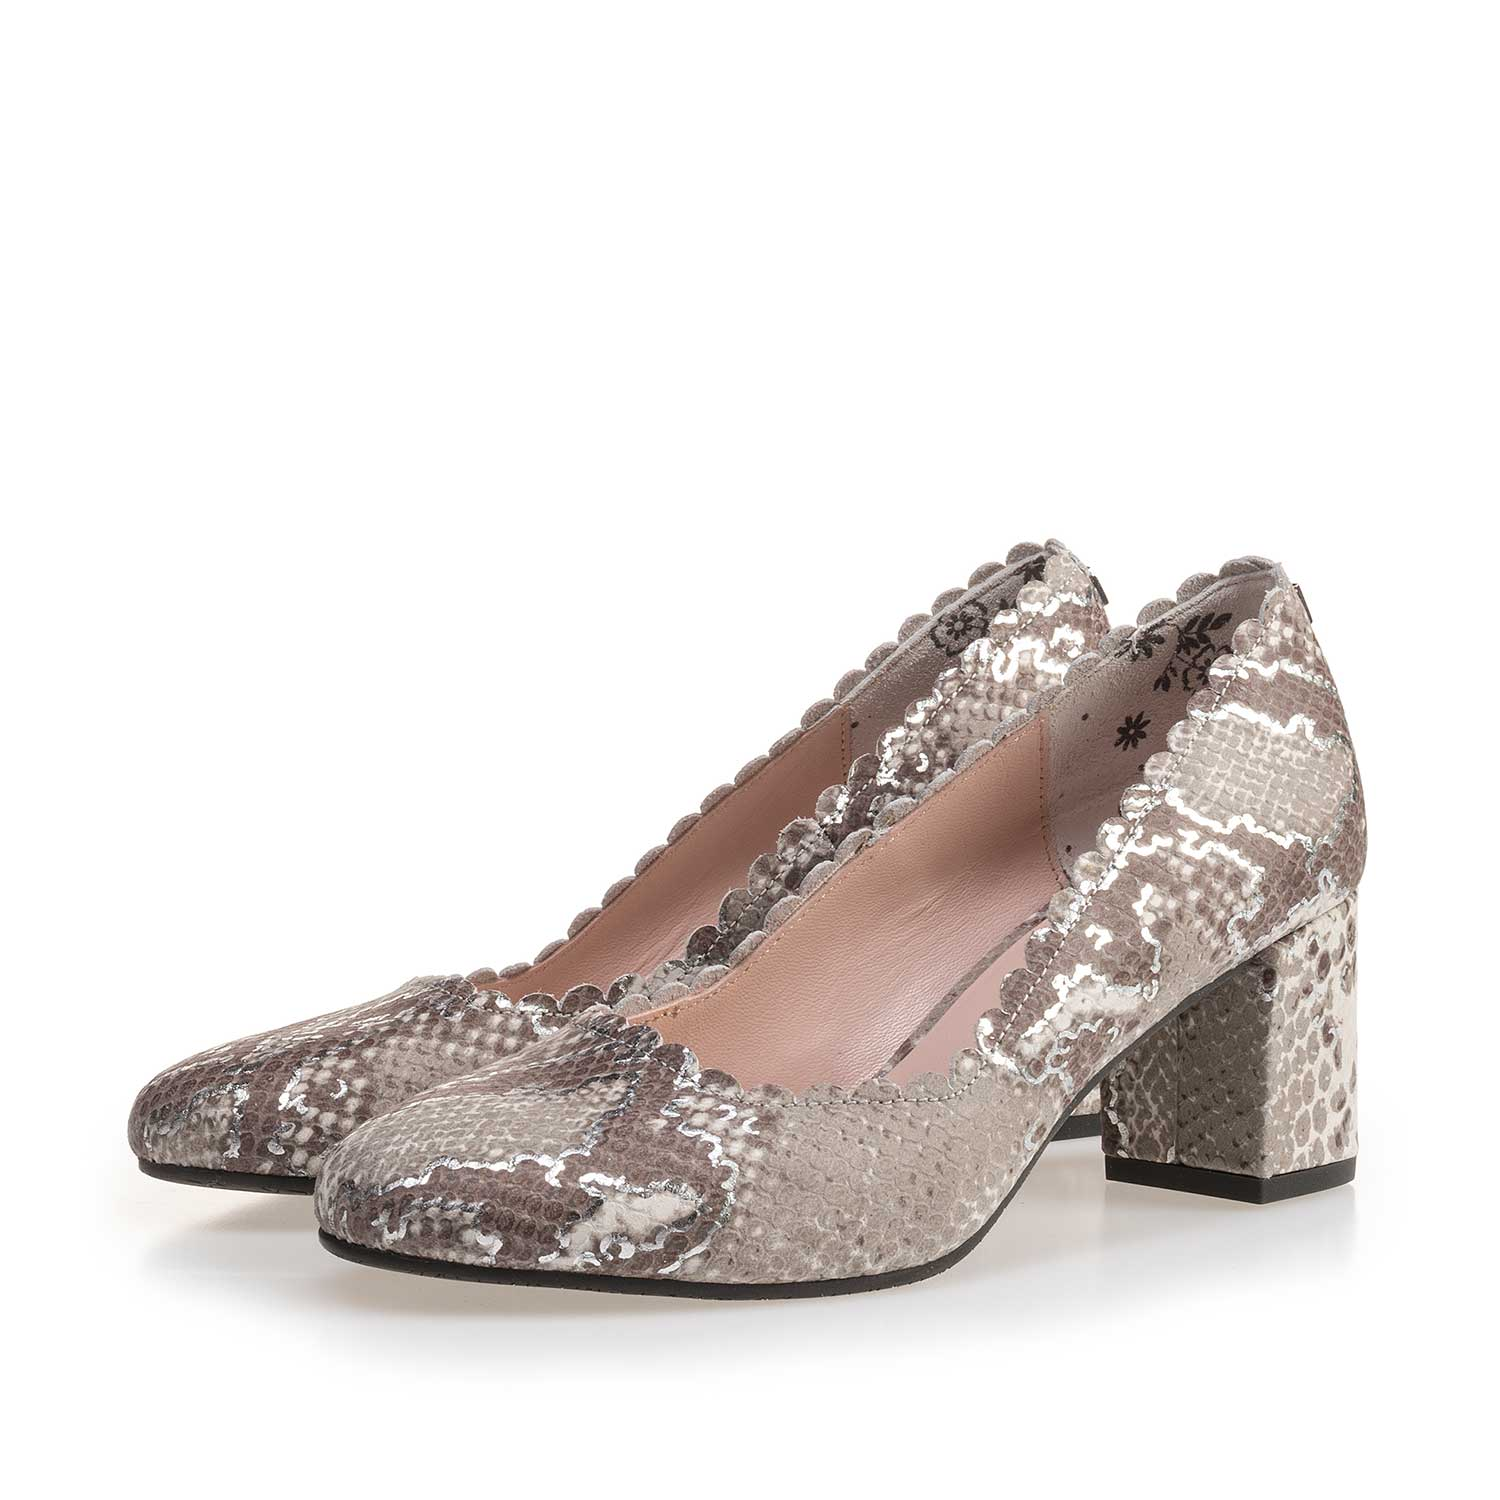 85226/03 - Taupe-coloured leather pumps with snake print